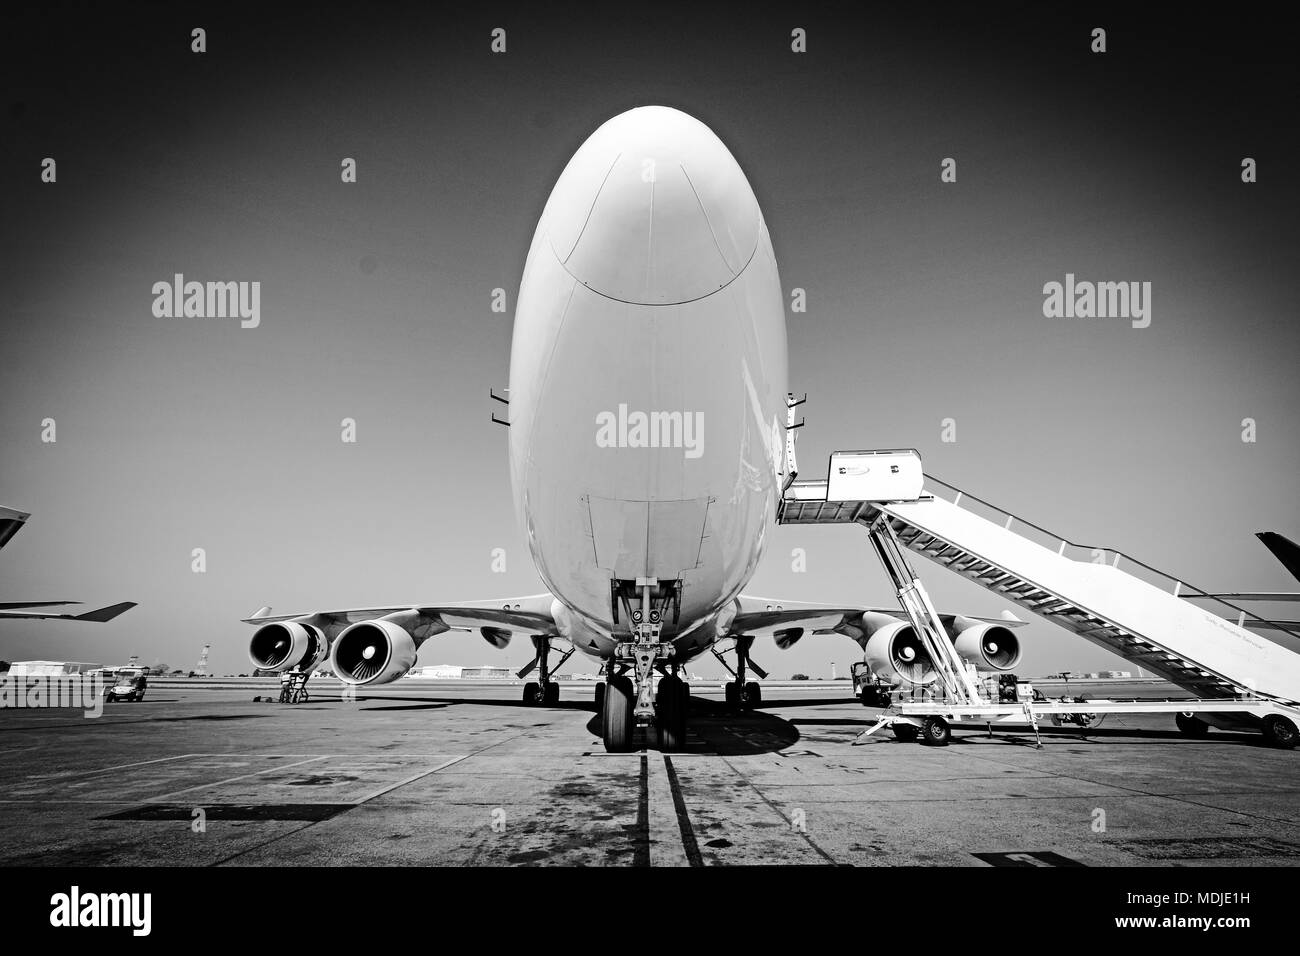 Boeing 747-400SF Freighter parked at the Cargo Ramp - Stock Image